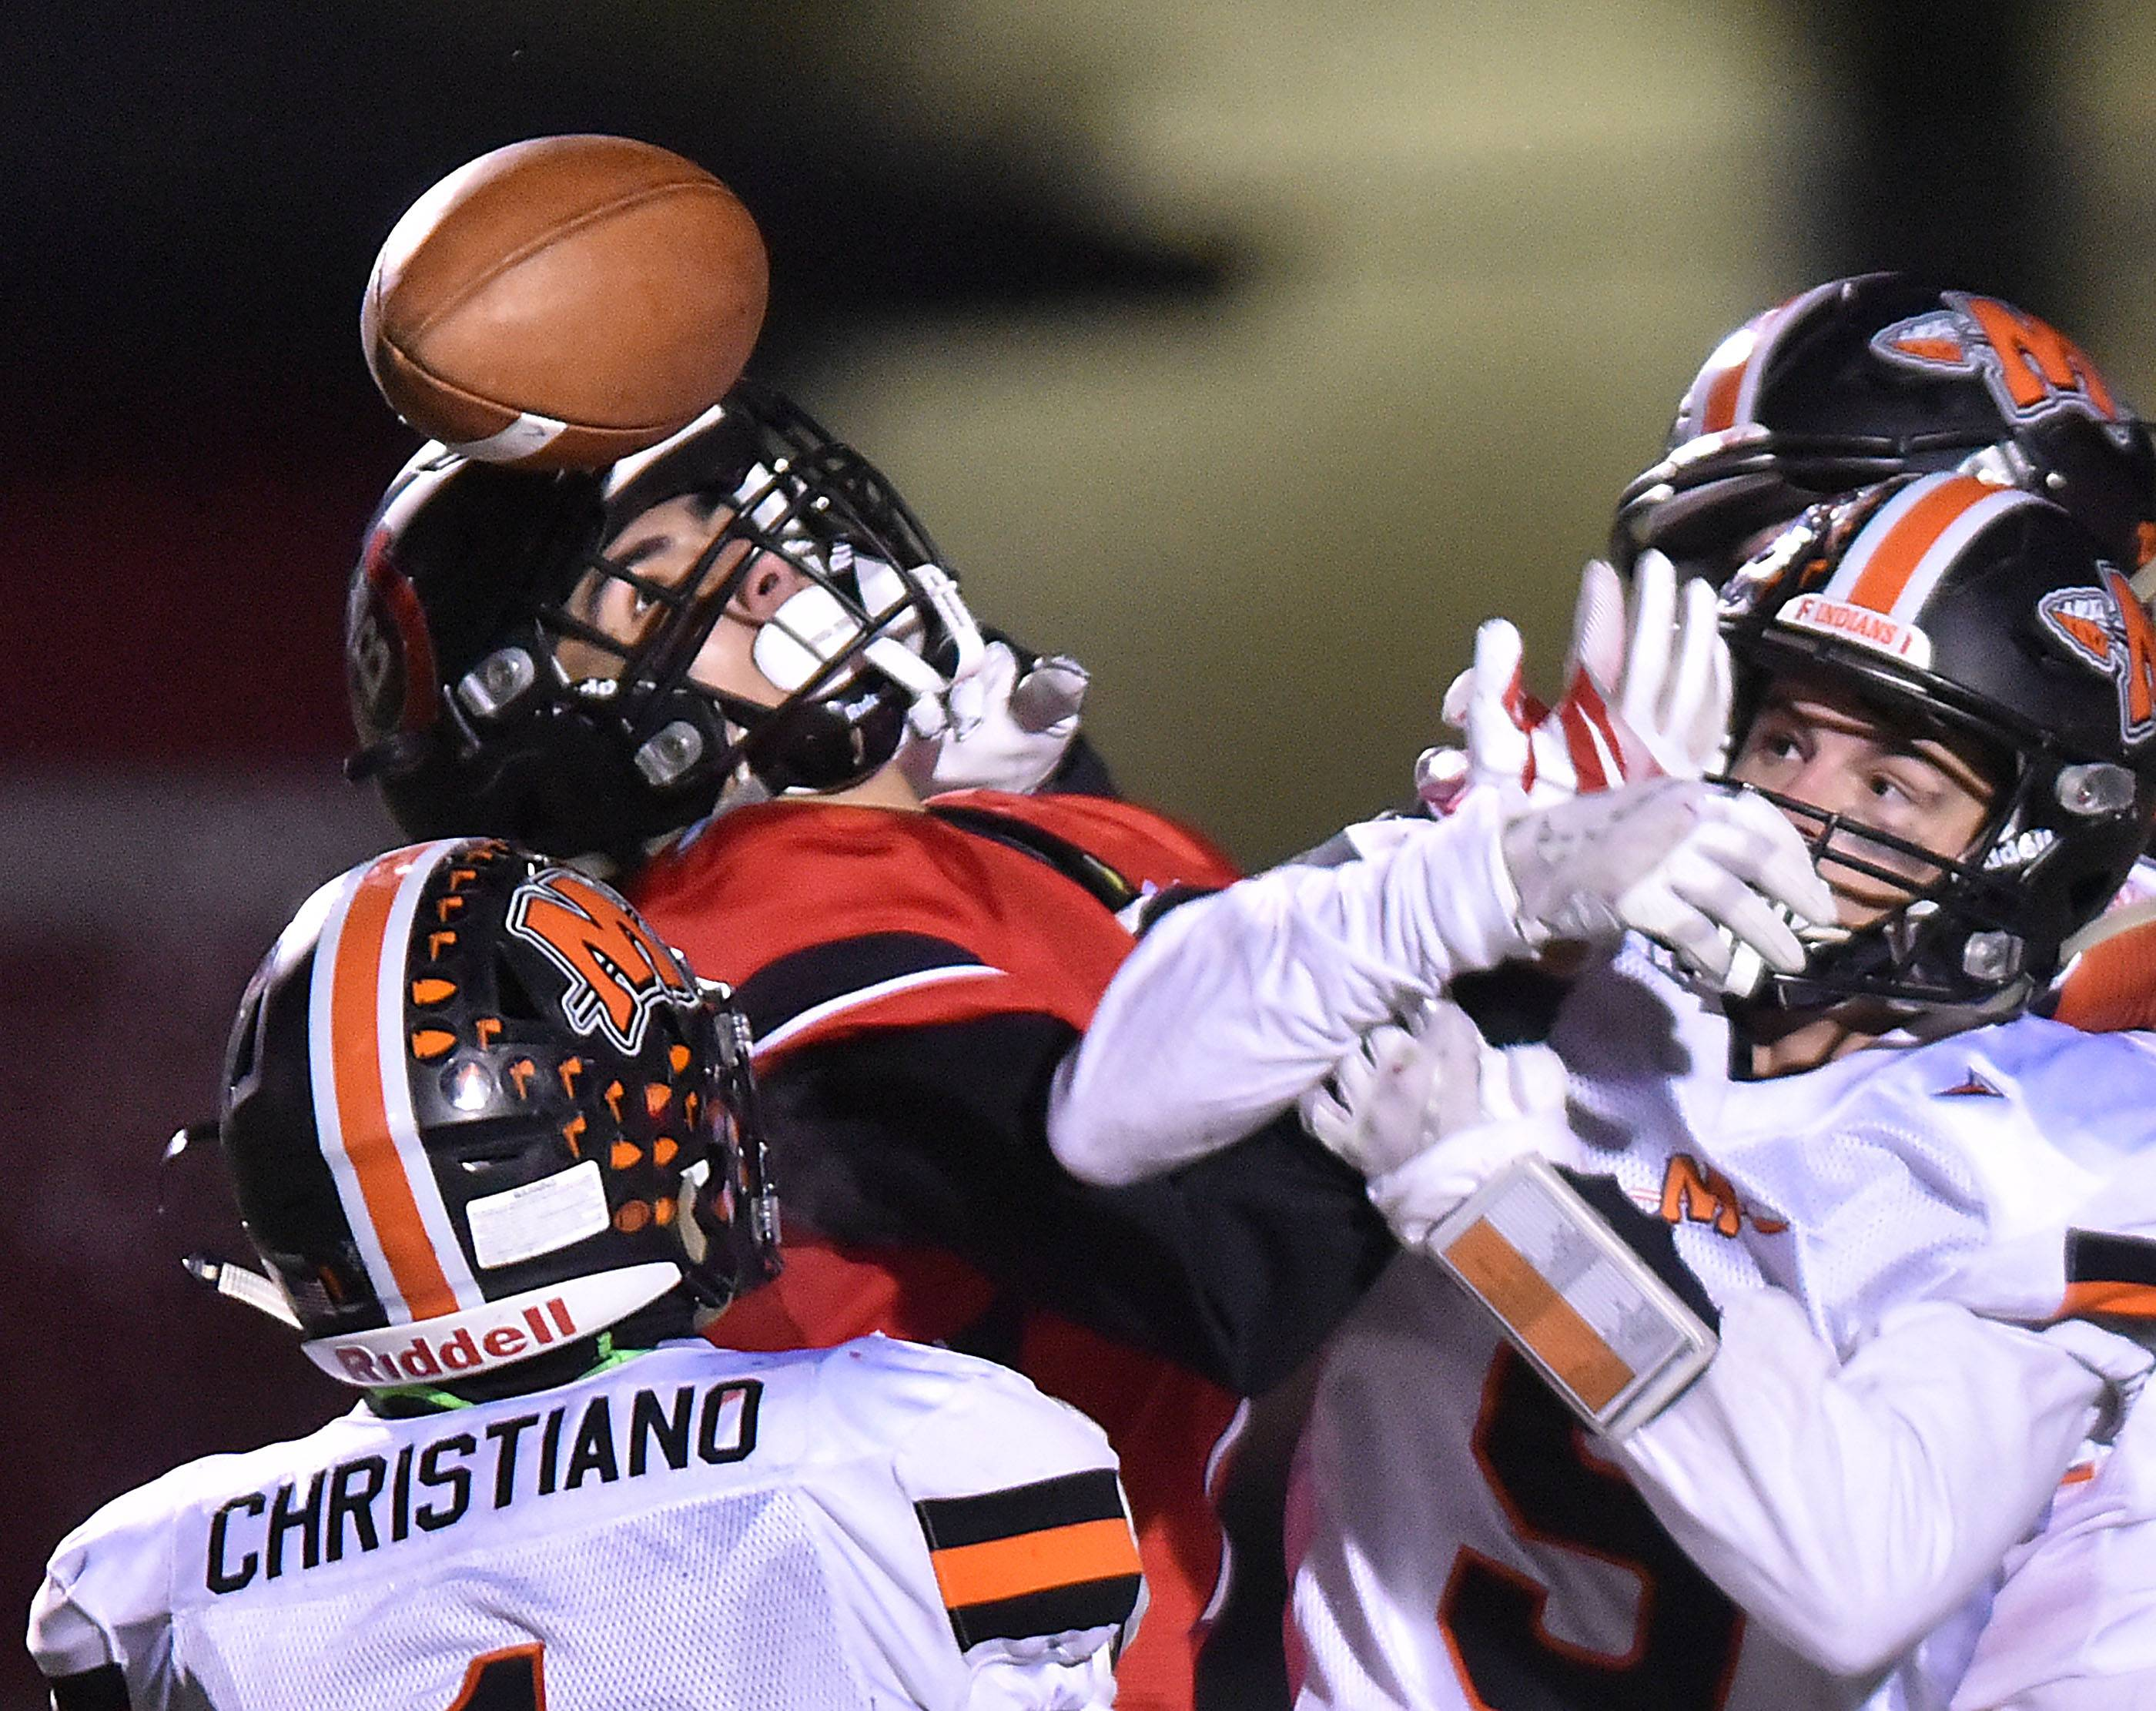 Images: Barrington falls in OT to Minooka, 41-34 in playoff football